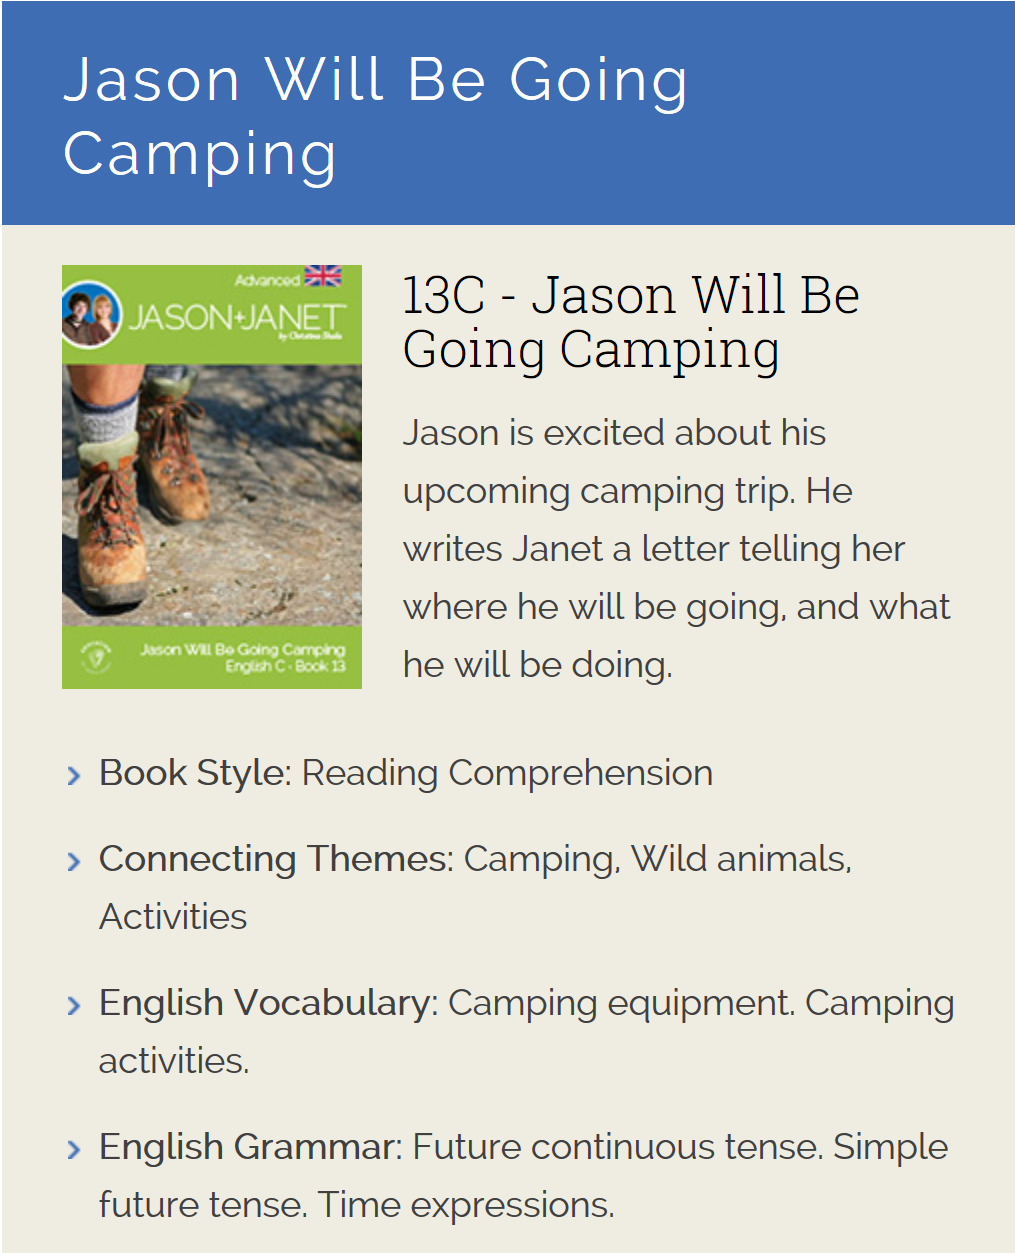 Jason Will Be Going Camping - ESL eBook